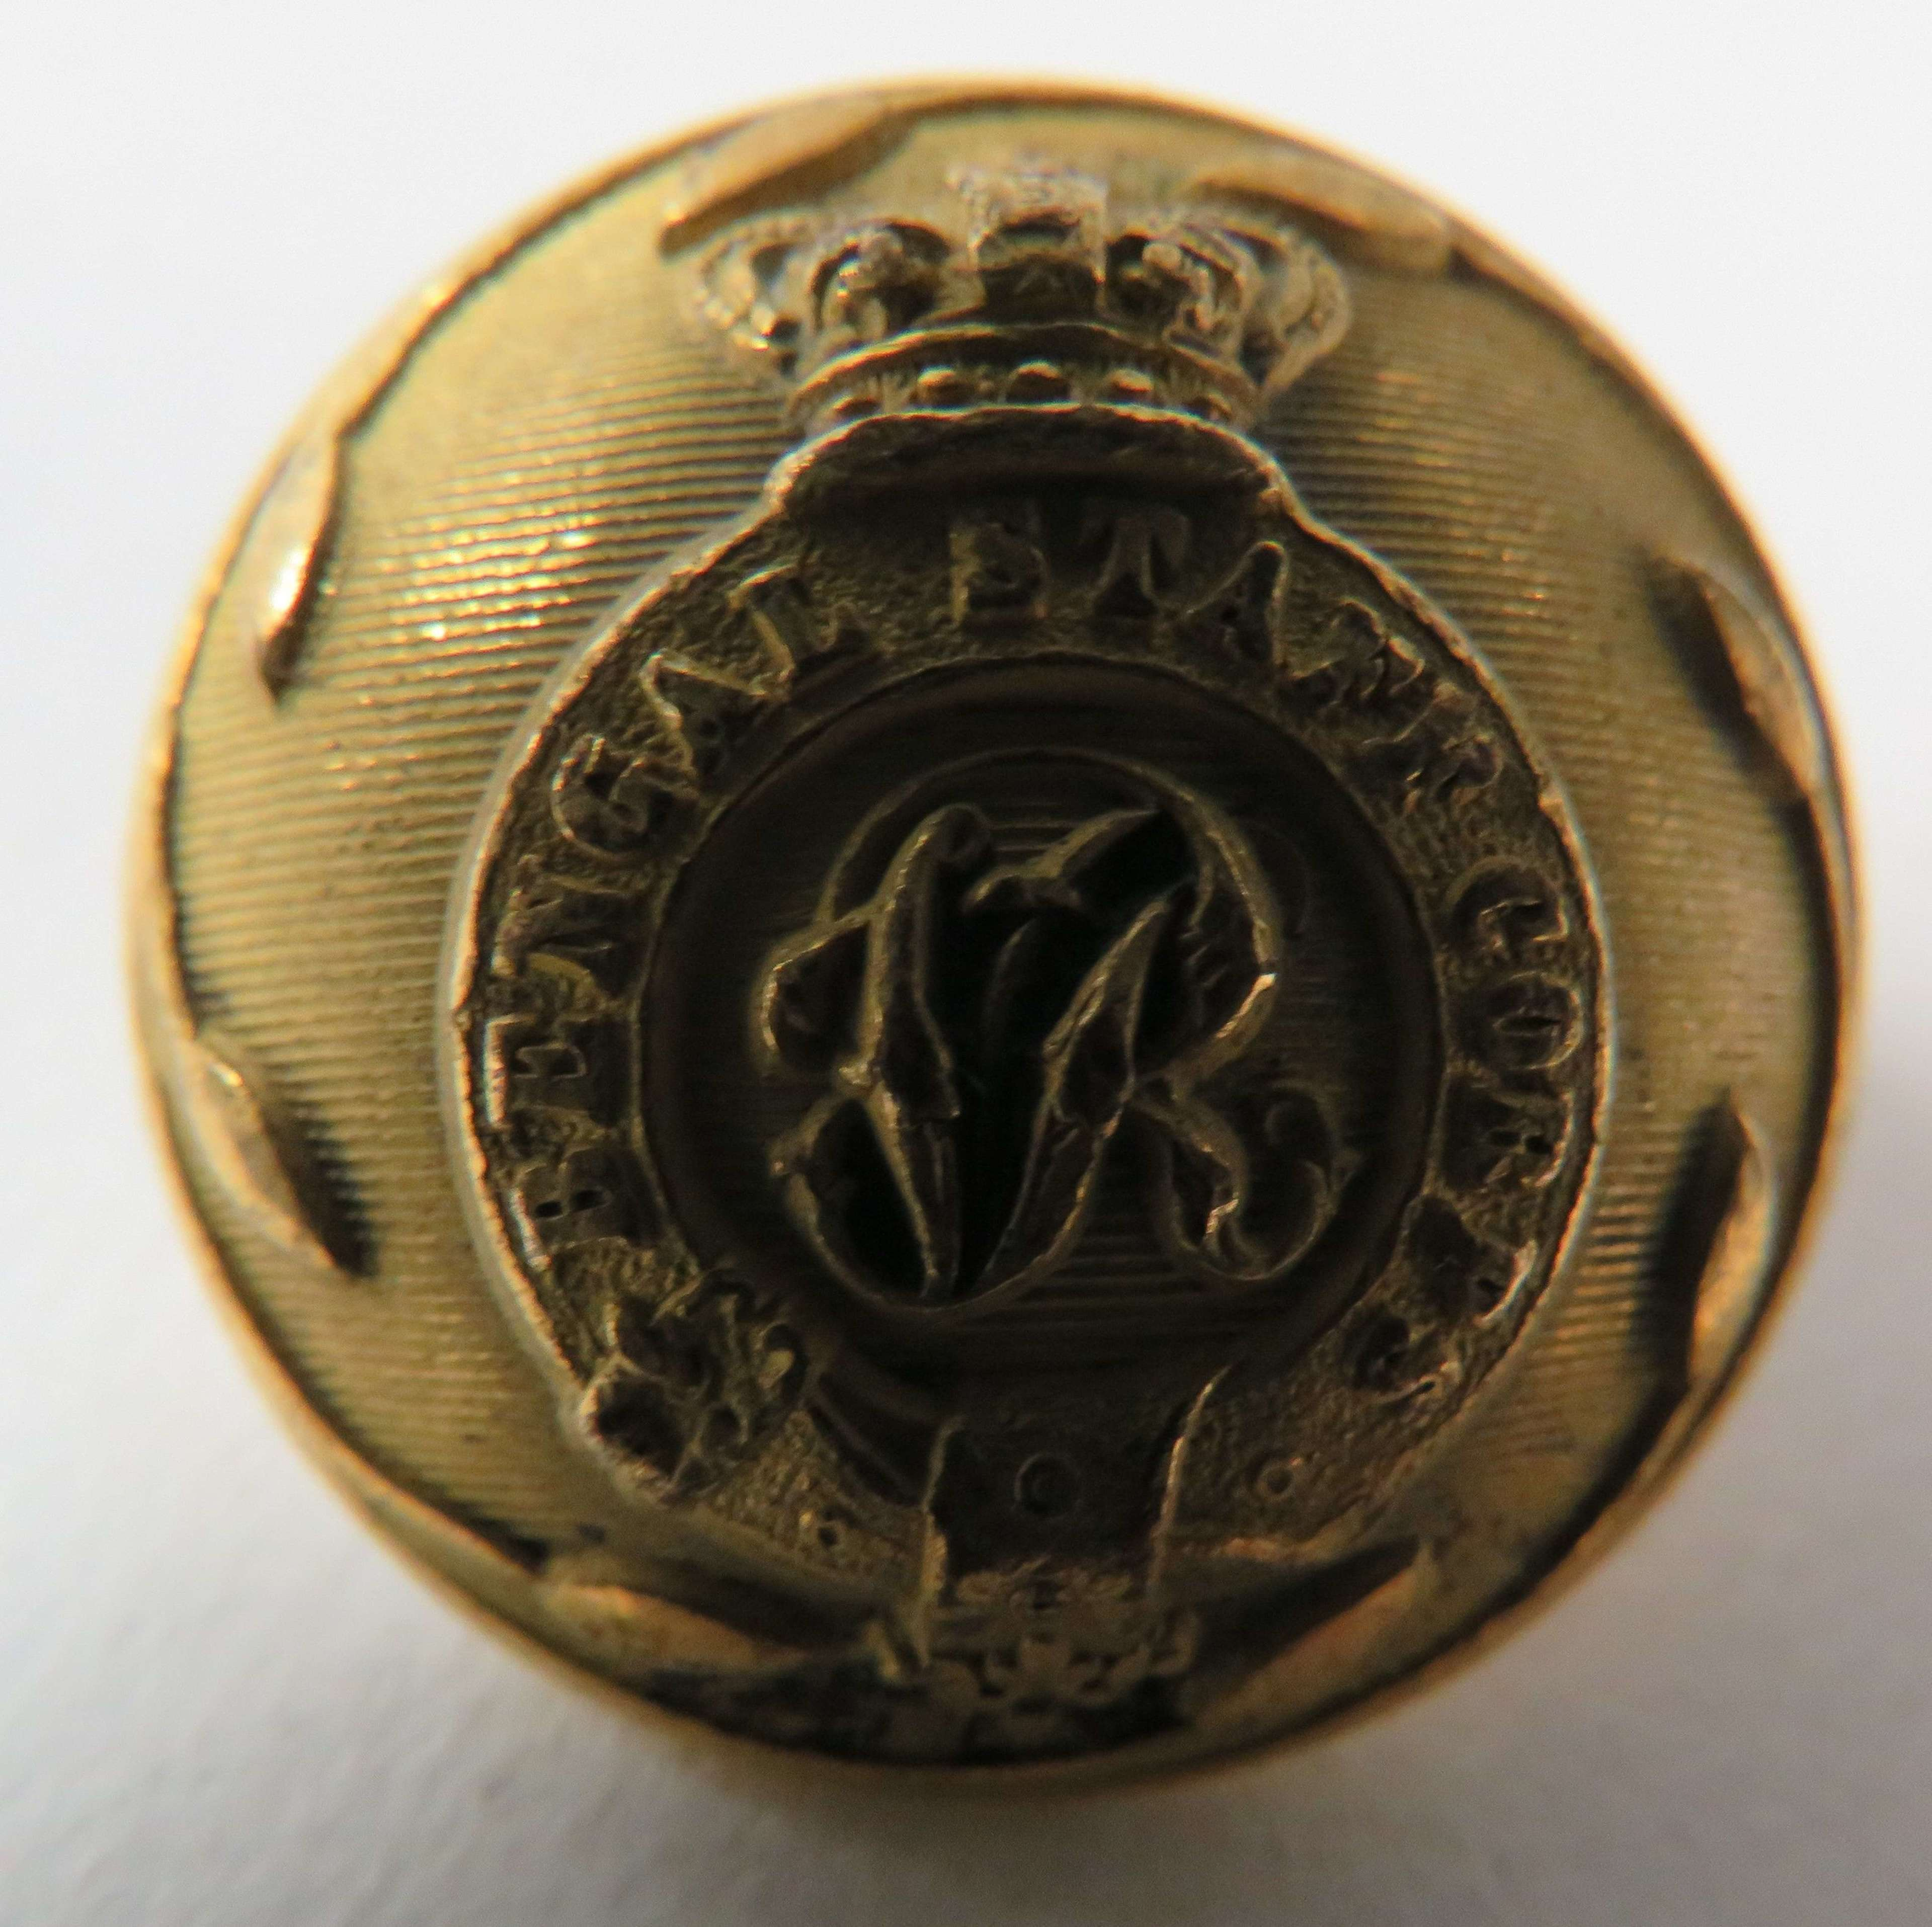 Victorian Bengal Staff Corps Large Button